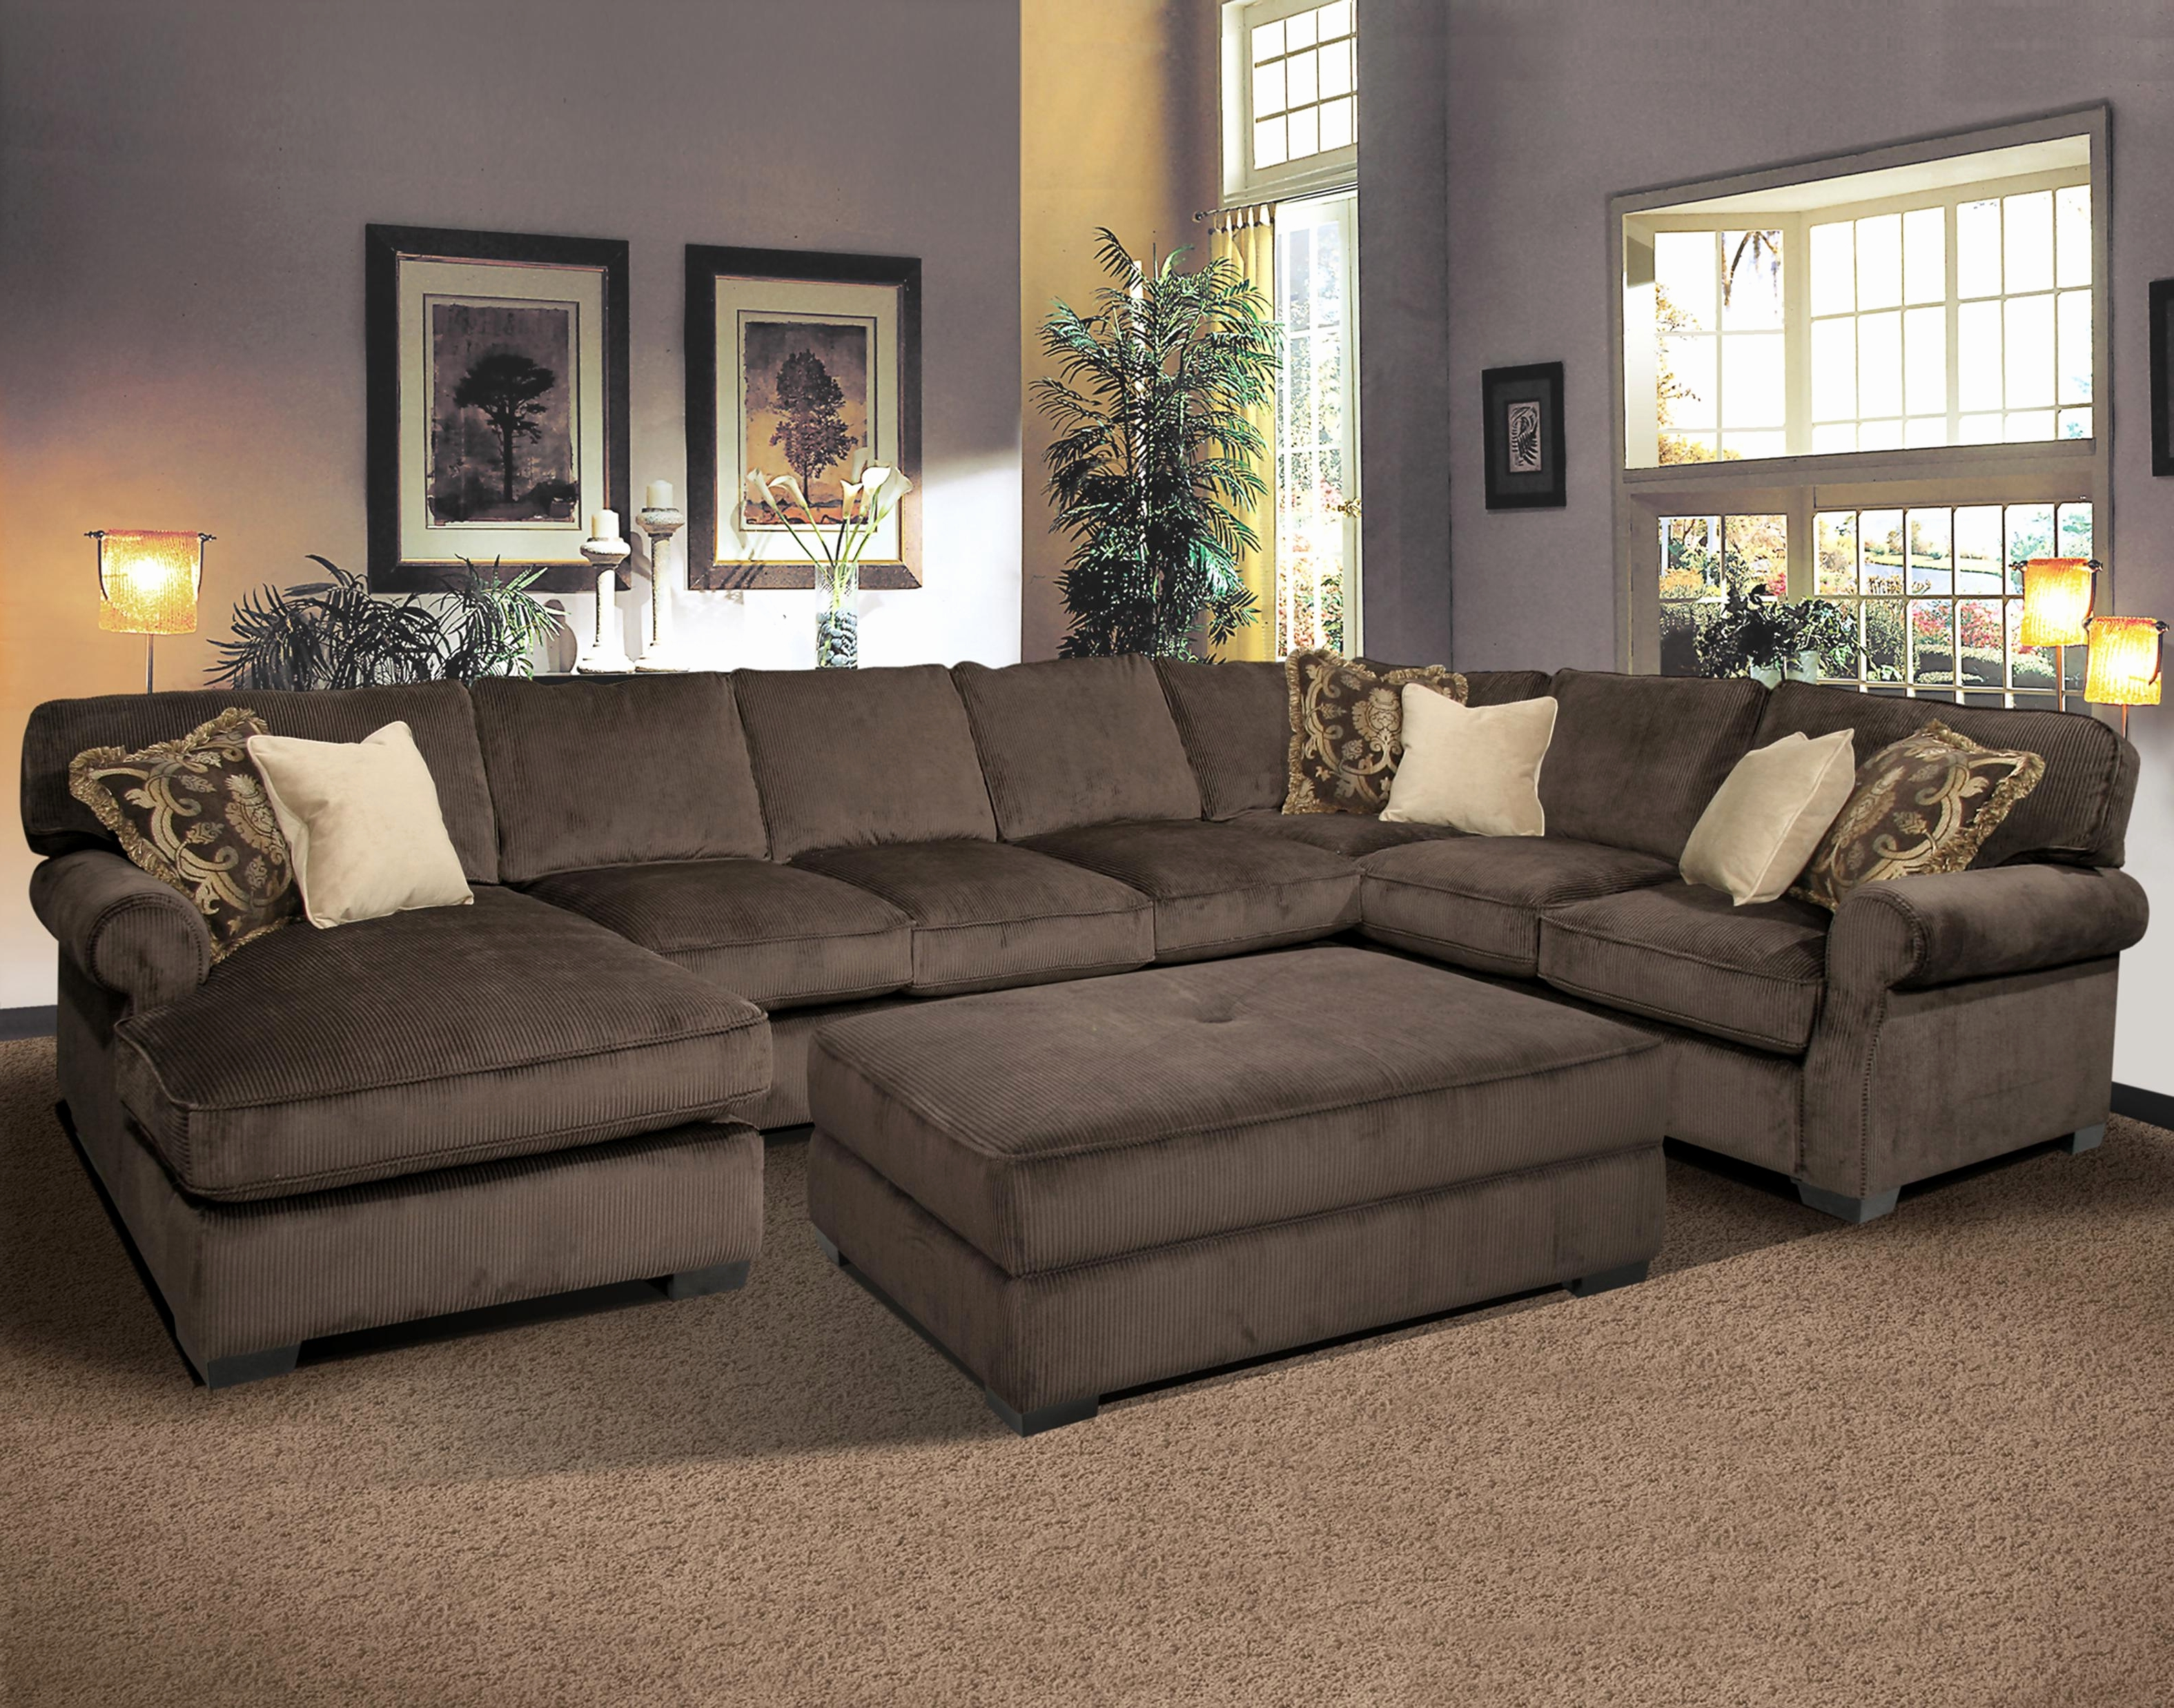 Clearance Sectional Sofas Pertaining To Fashionable Best Modular Sectional Sofa Good Sofa Elegant Clearance Sectional (View 5 of 20)